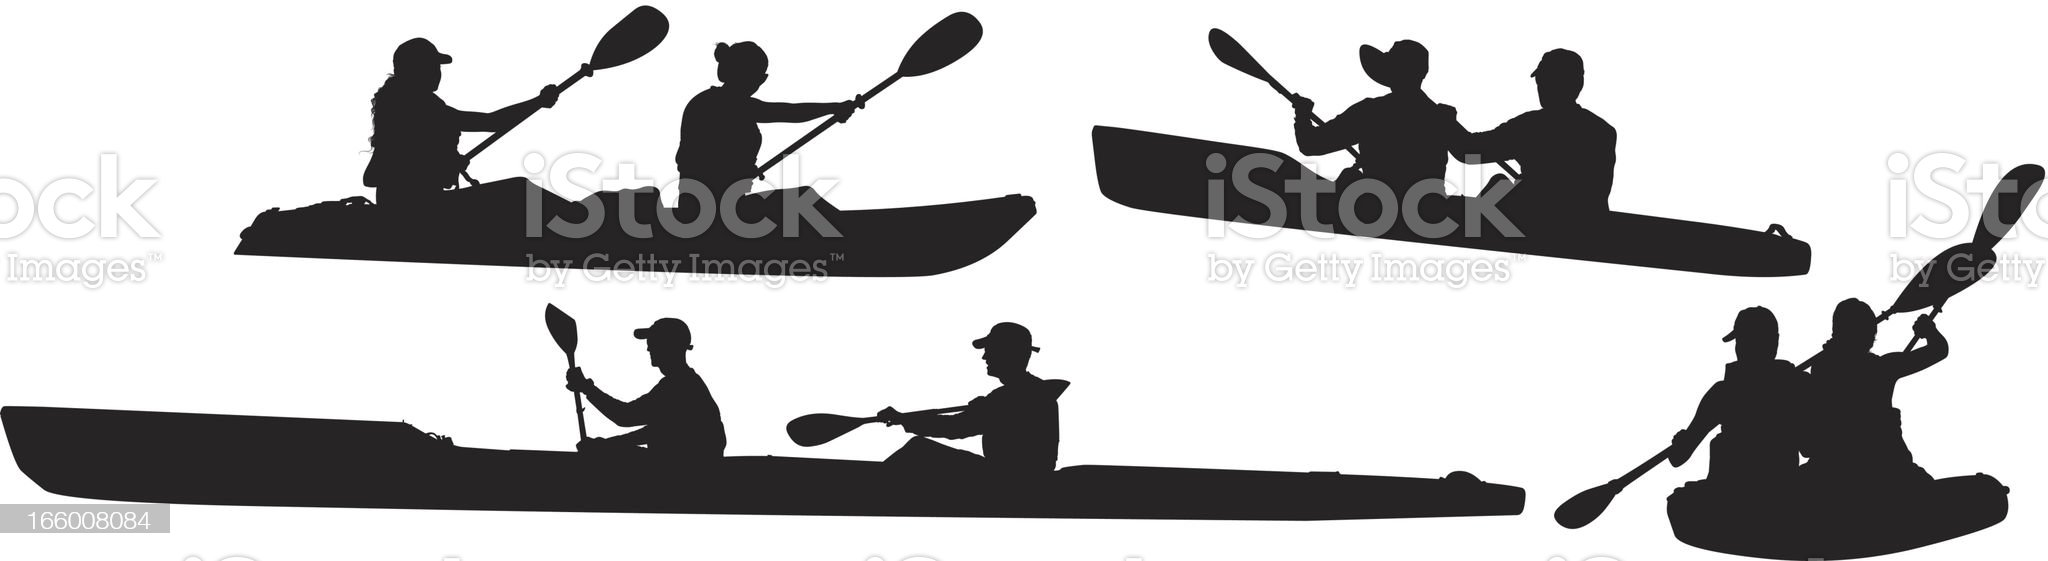 Multiple images of people kayaking royalty-free stock vector art